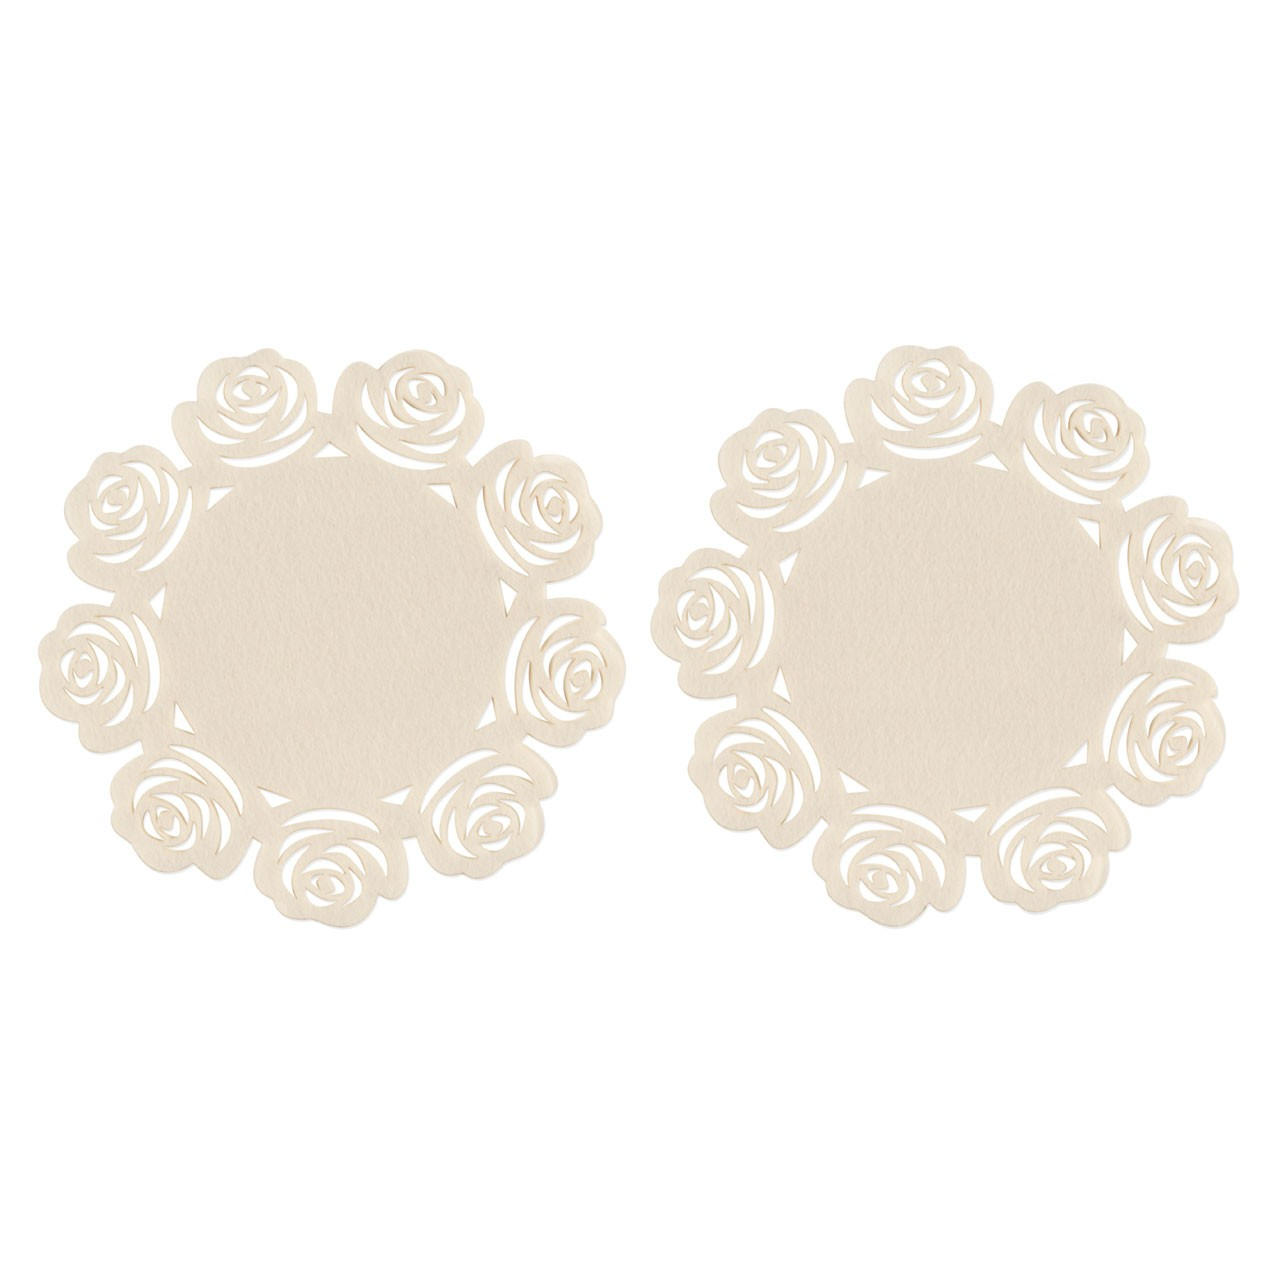 Rose Design Placemats - Ivory, Set of 2